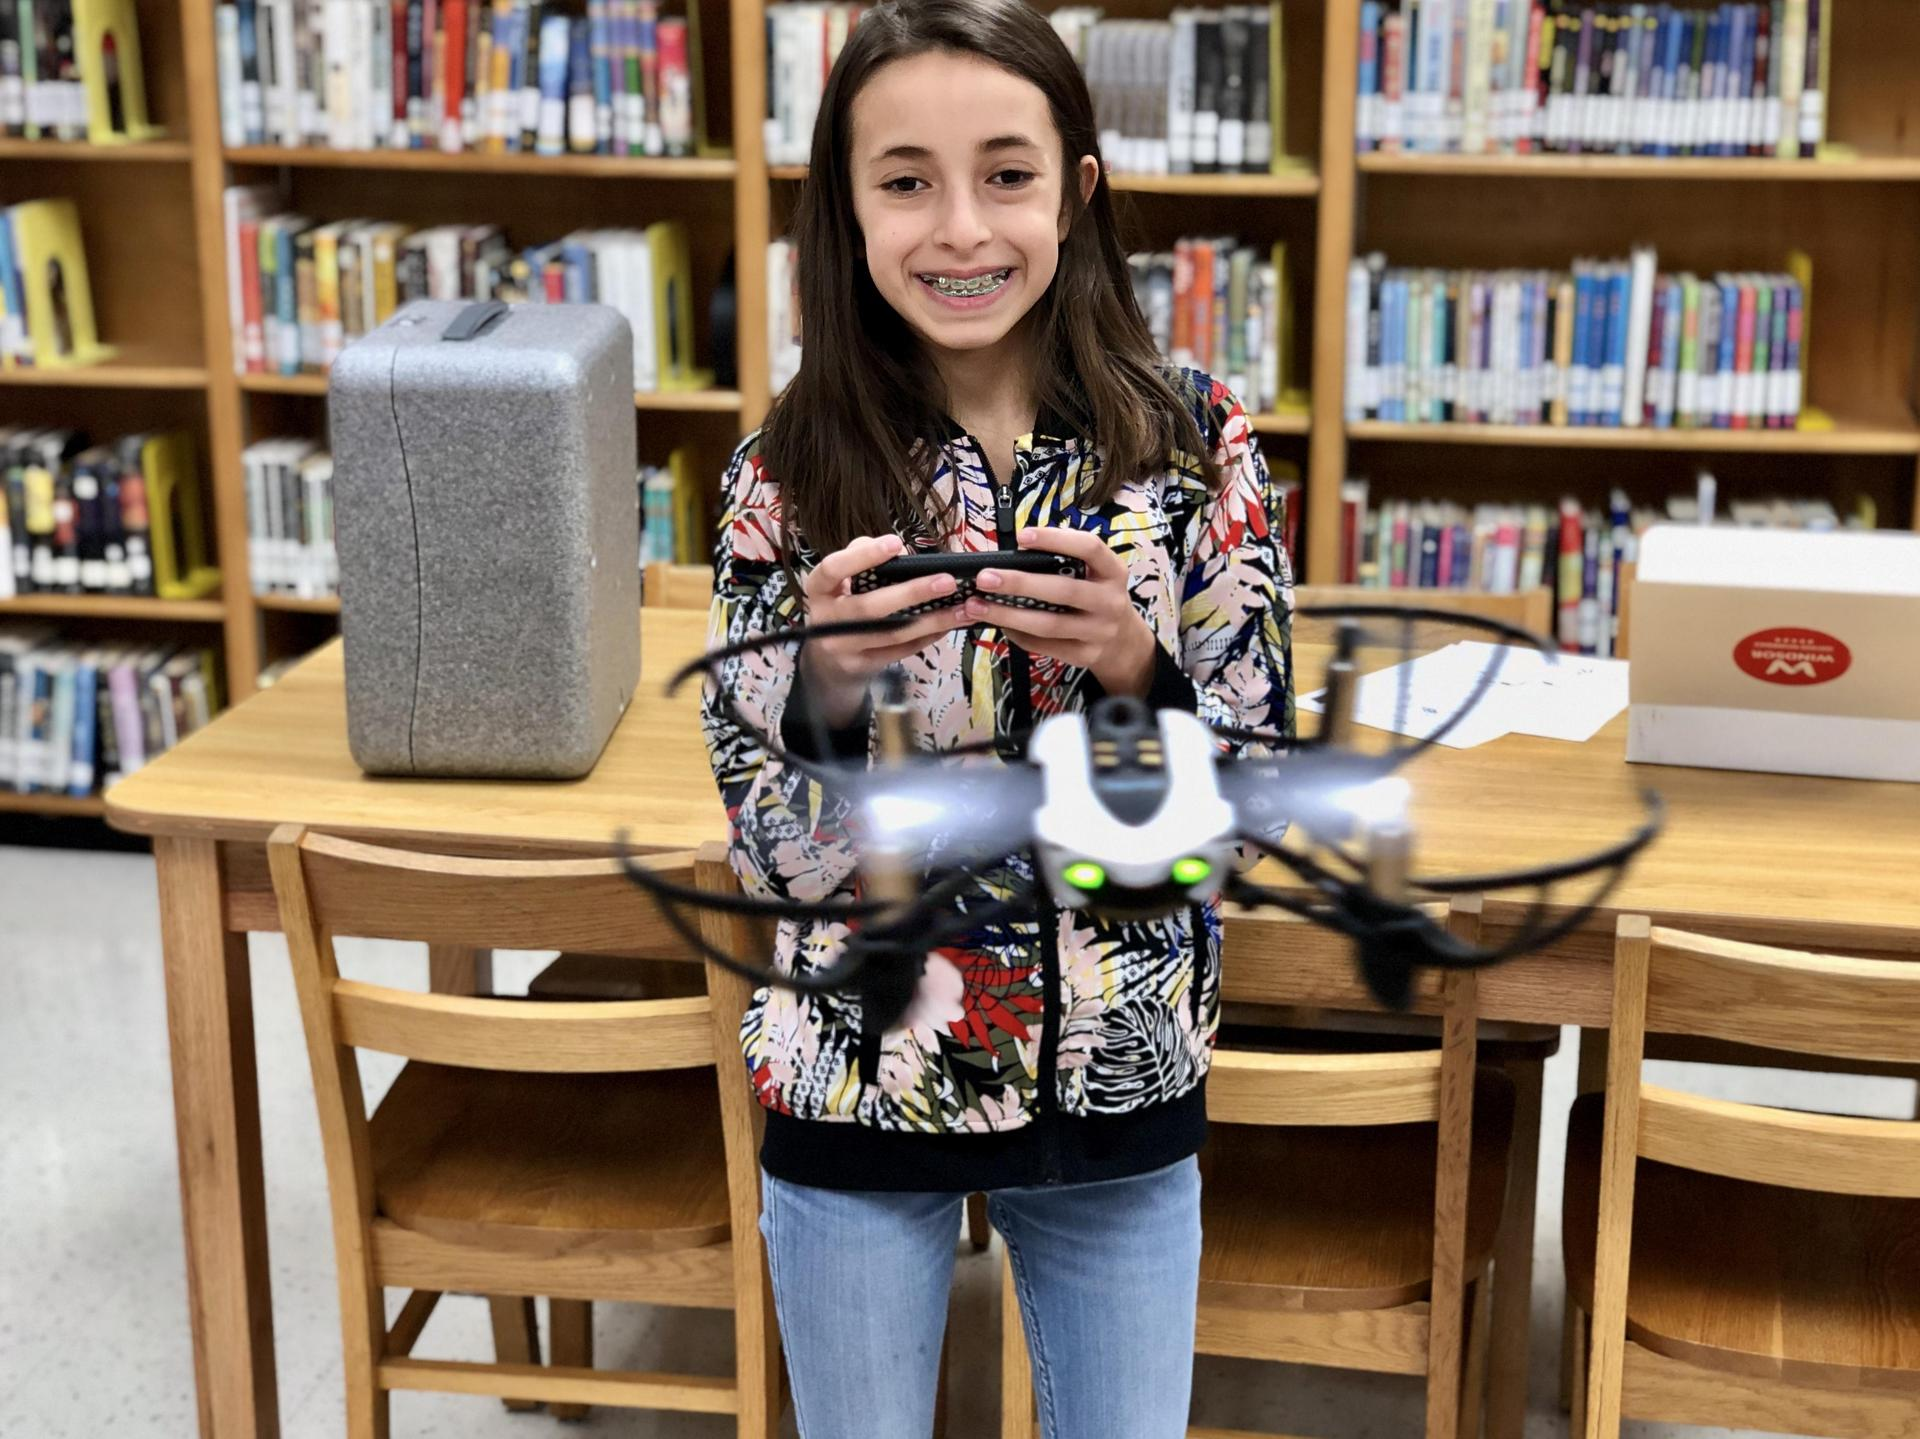 Student is driving a drone.